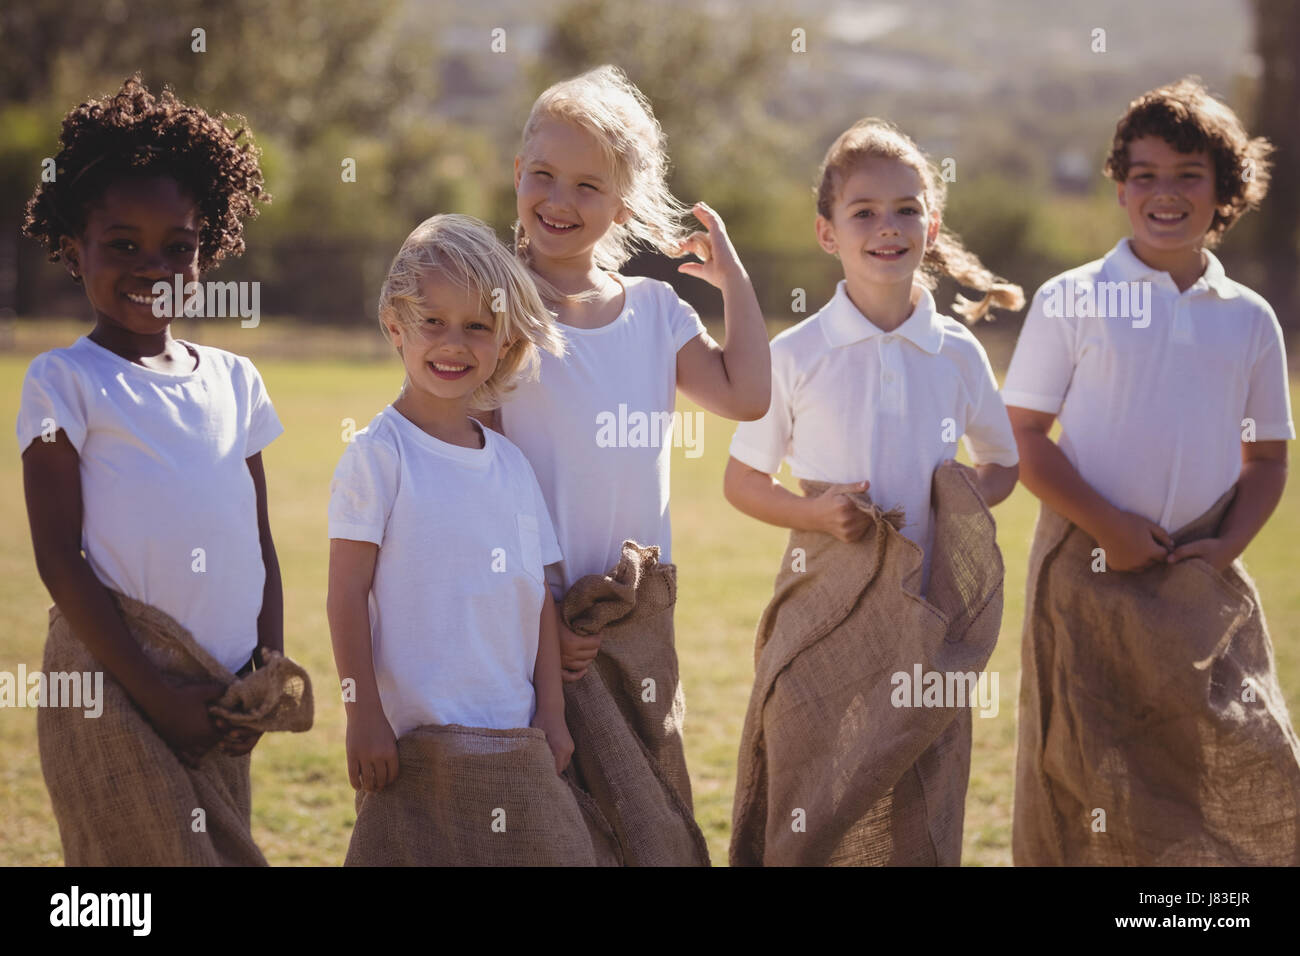 Happy schoolgirls having fun during sack race in park on a sunny day - Stock Image